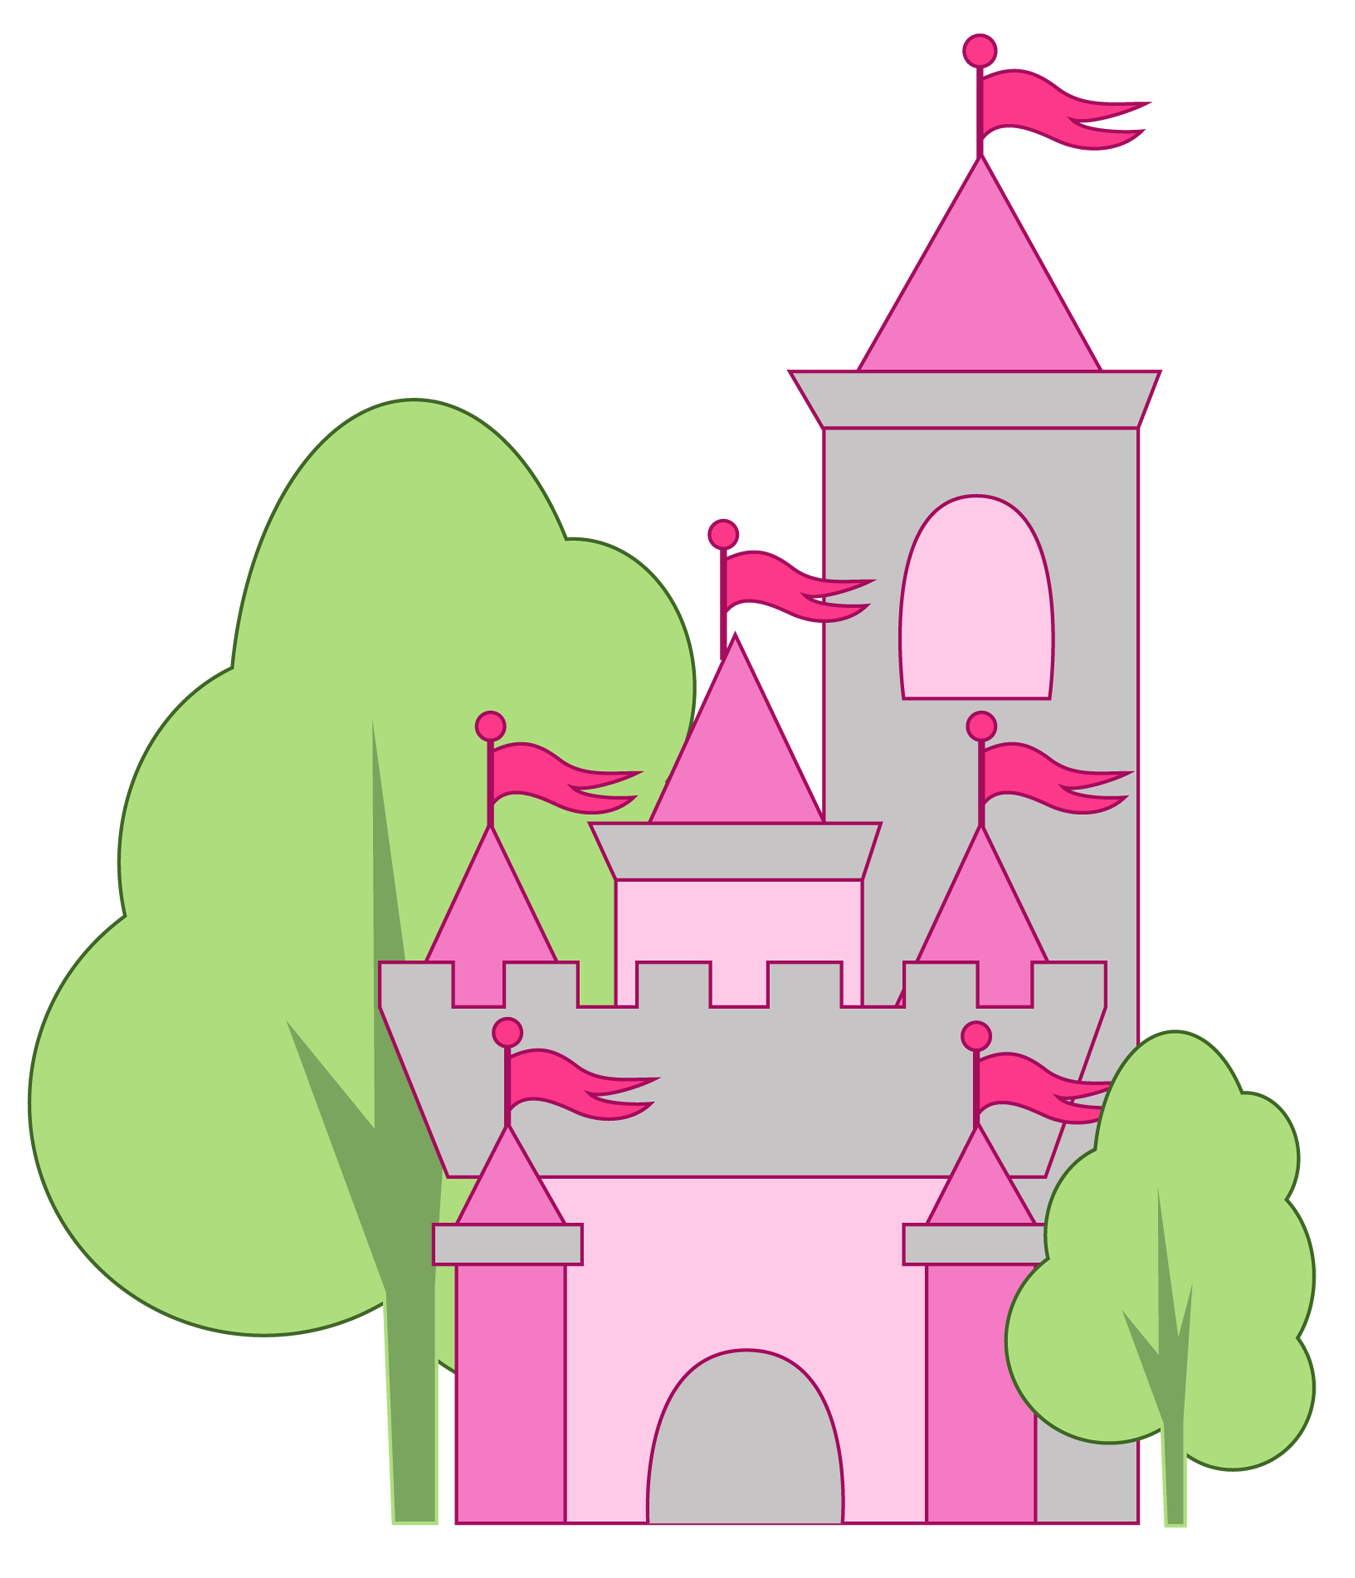 Free at getdrawings com. Palace clipart princess castle